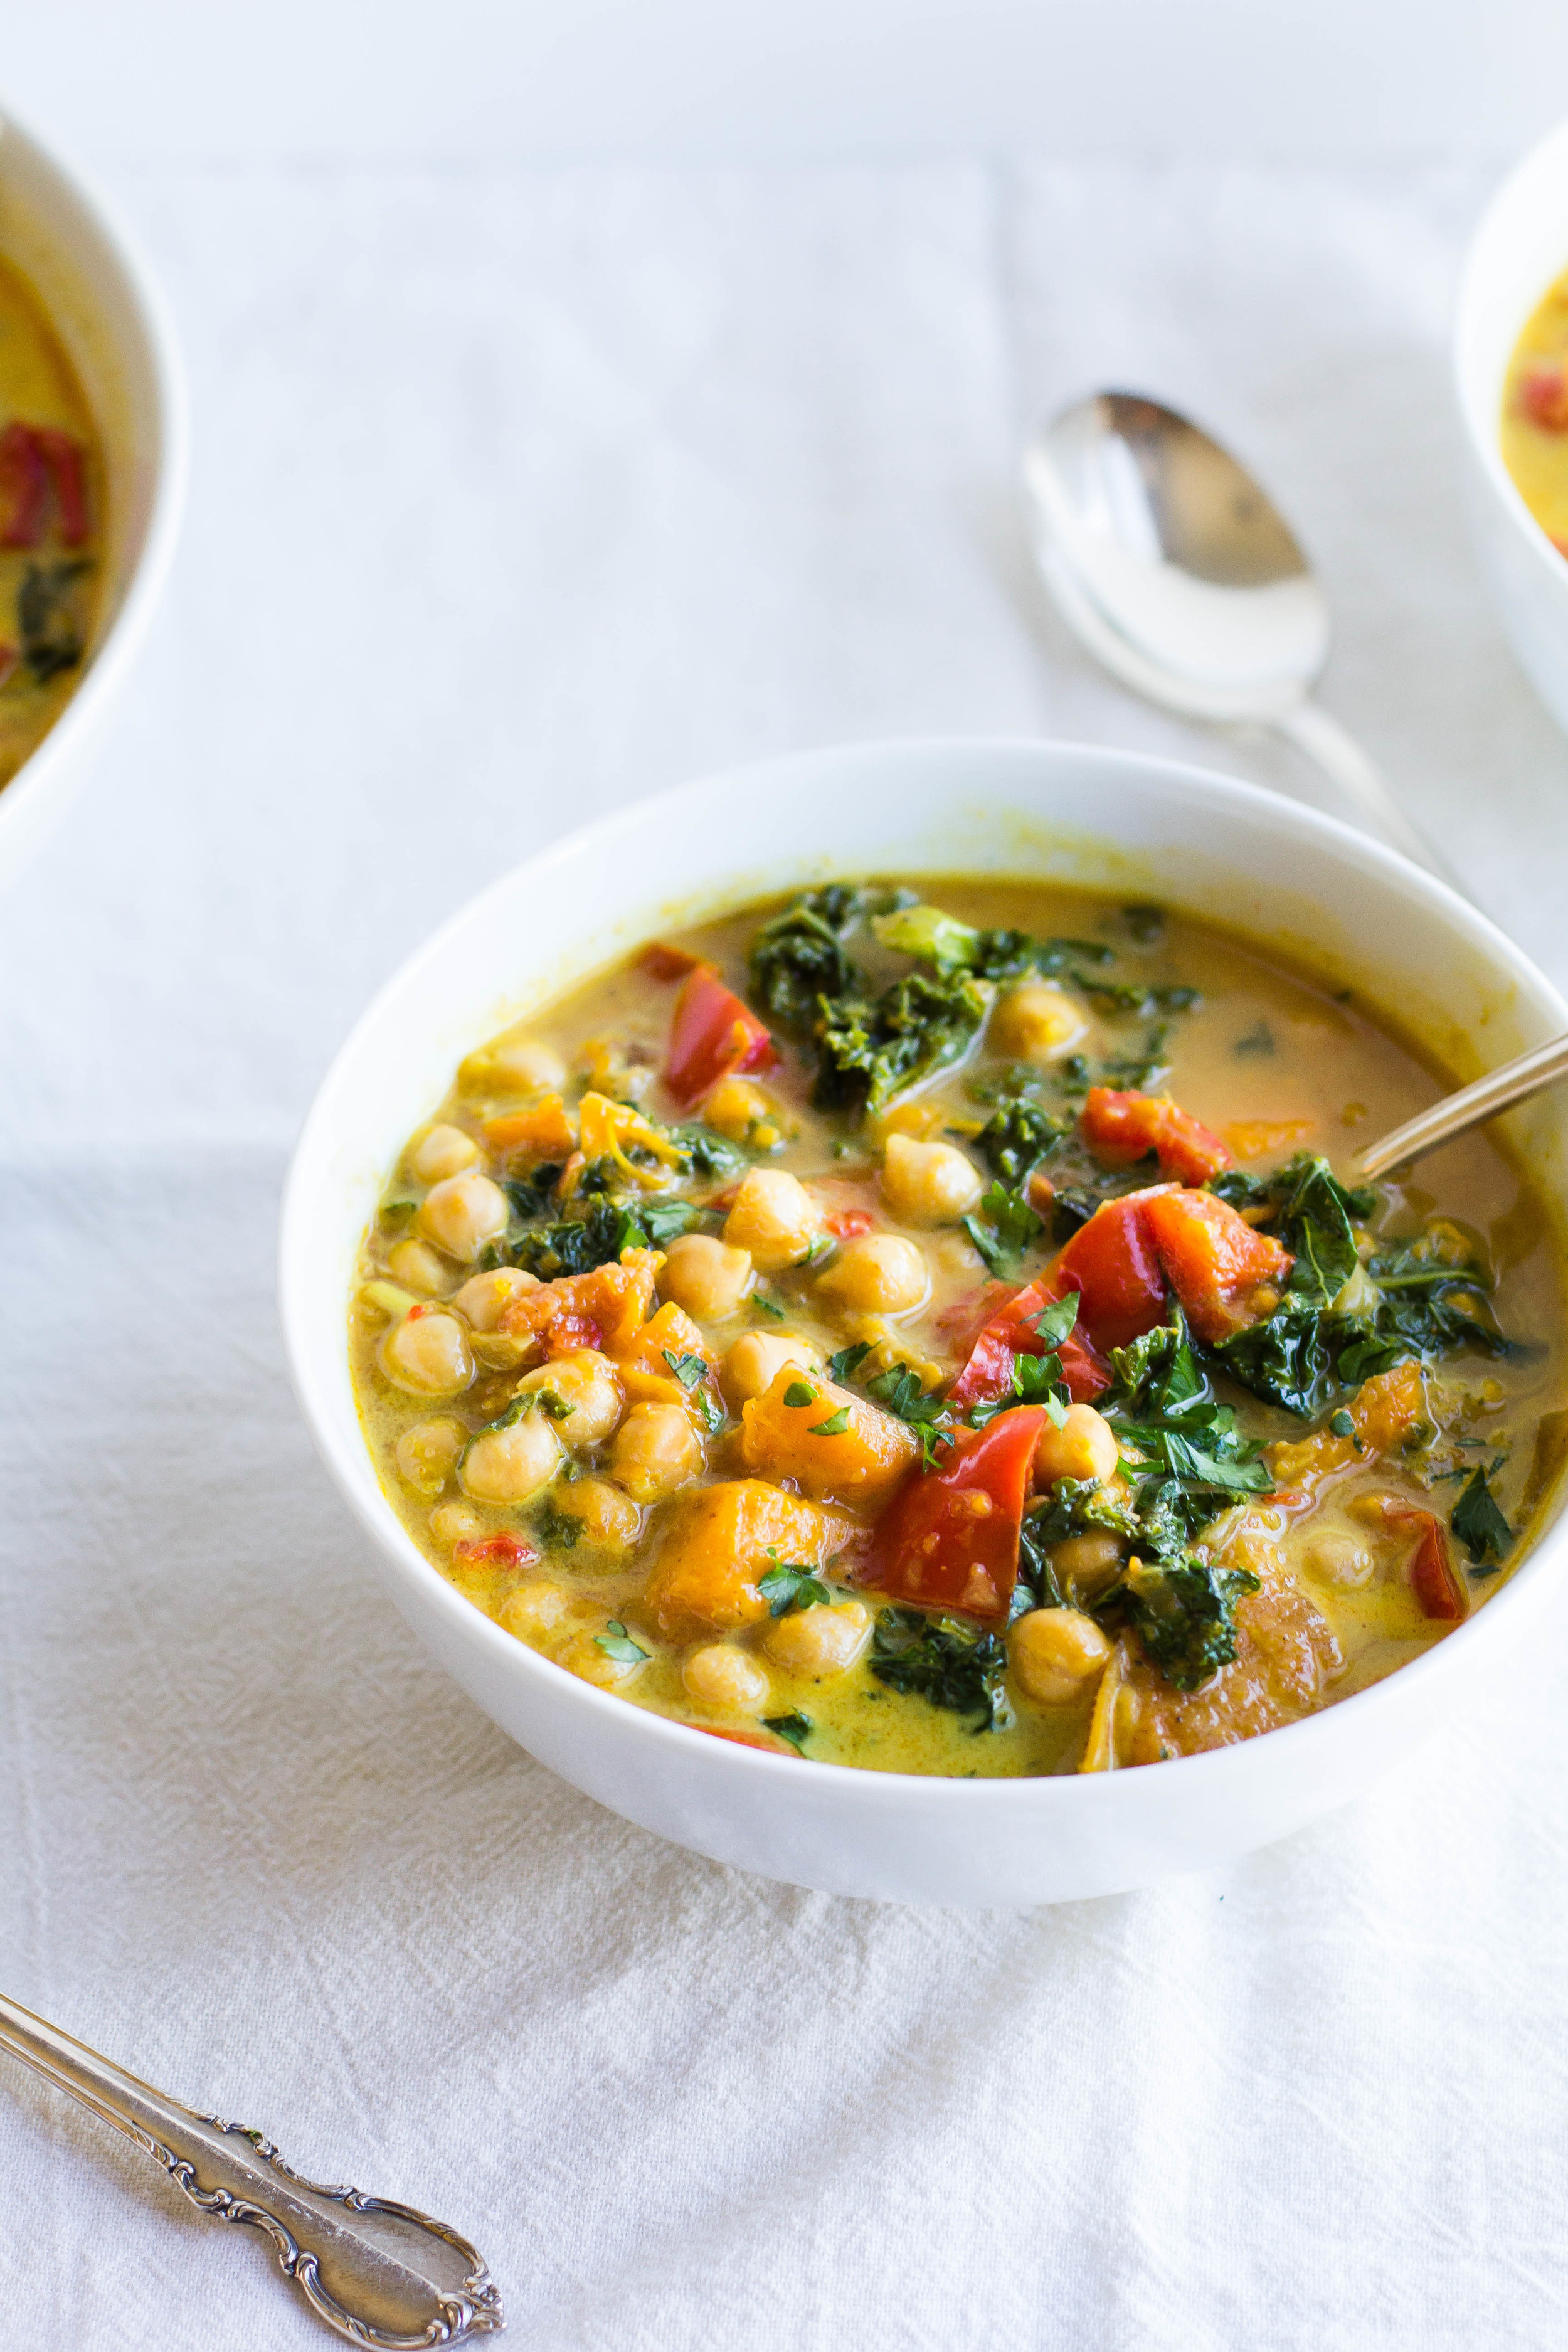 Slow Cooker Curry Stew with Chickpeas, Sweet Potatoes + Kale | Sarah J. Hauser